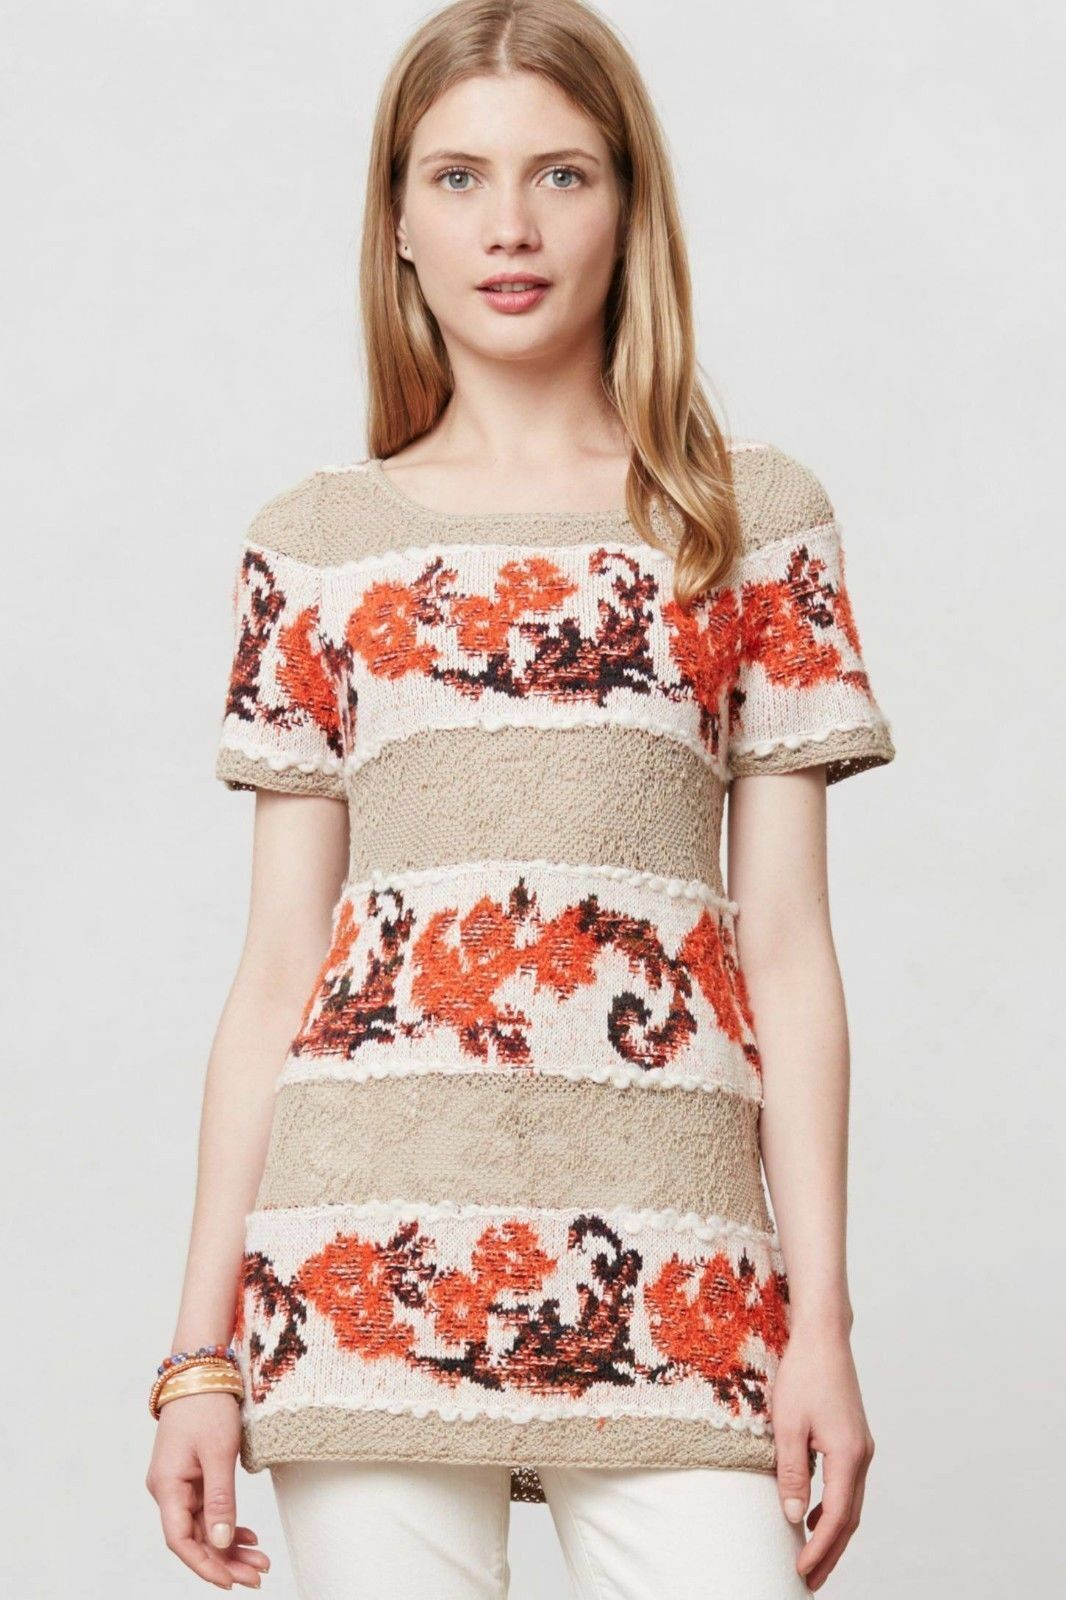 NWT ANTHROPOLOGIE BANDED BOUQUETS TUNIC TOP SWEATER by KNITTED & KNOTTED M